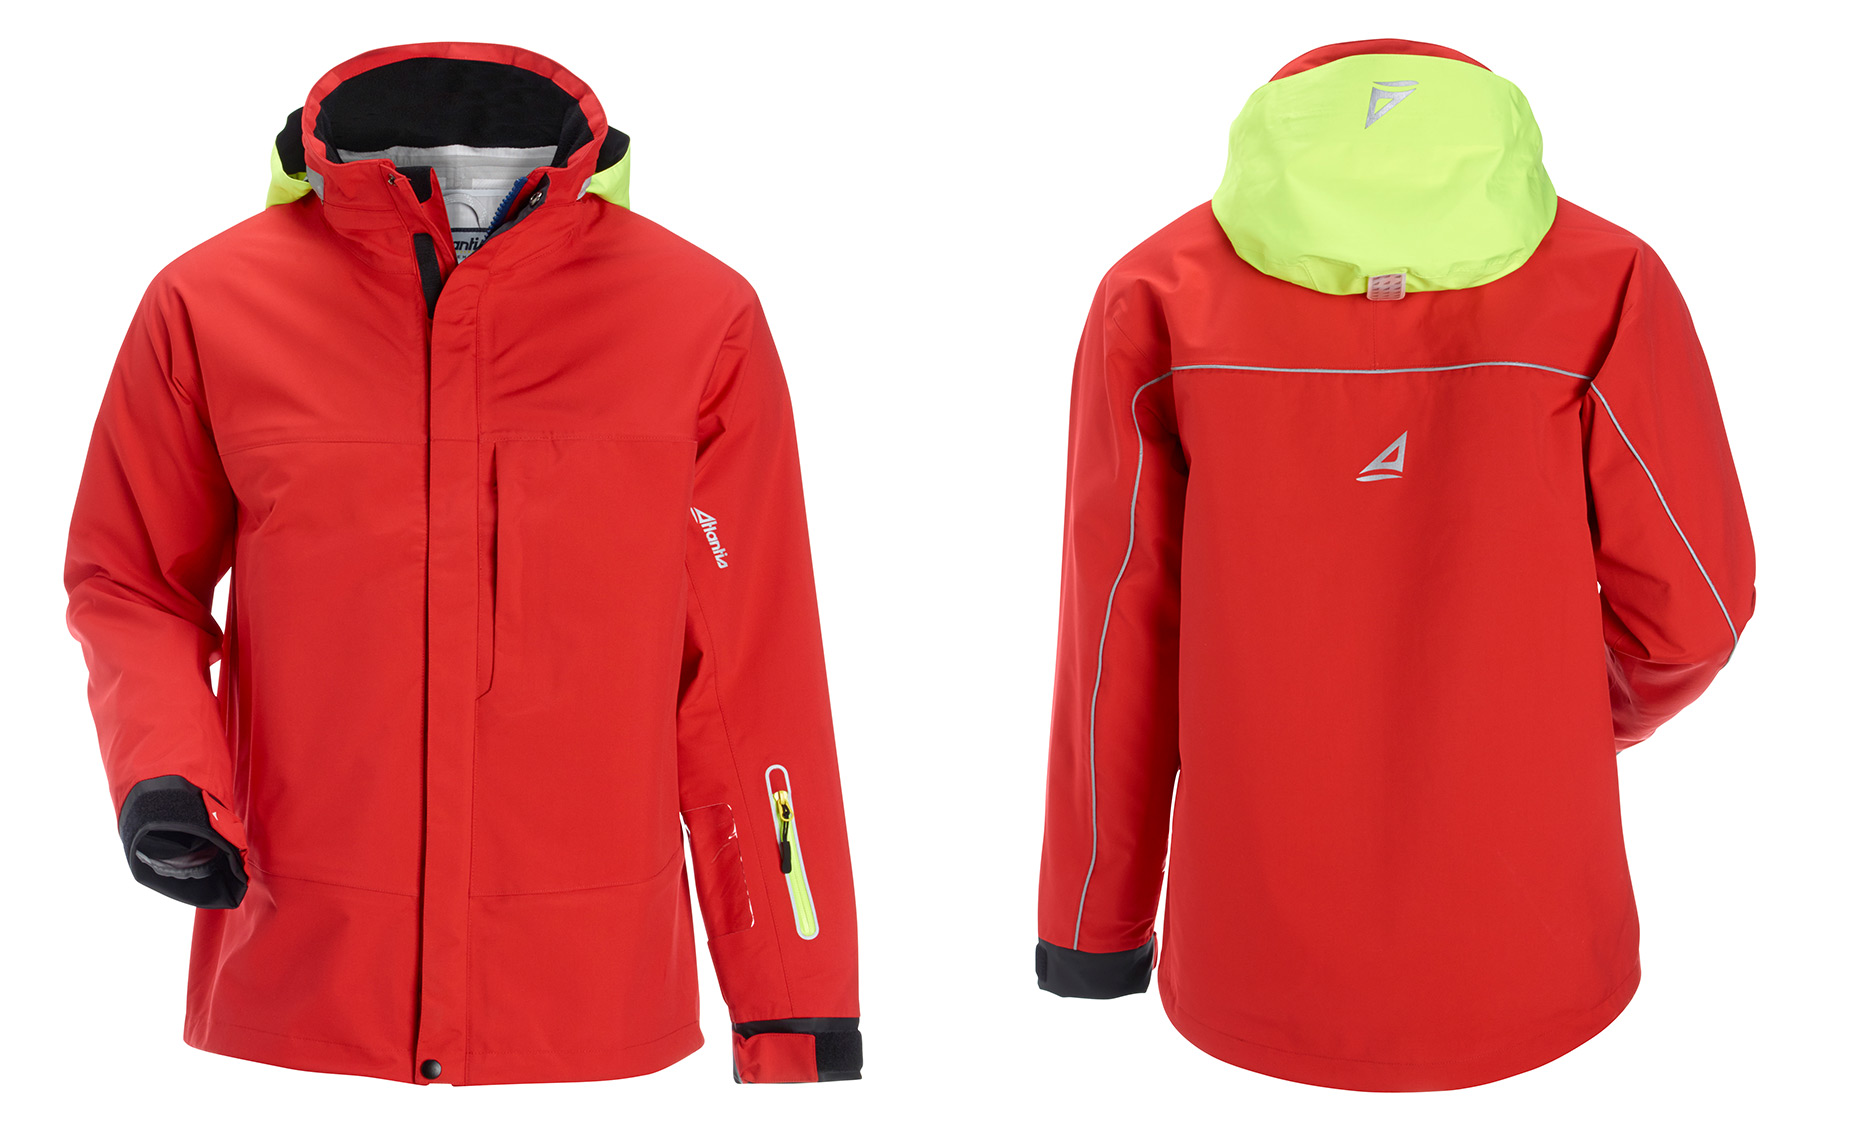 Atlantis-Aegis-Jacket-Front-and-Back-IP